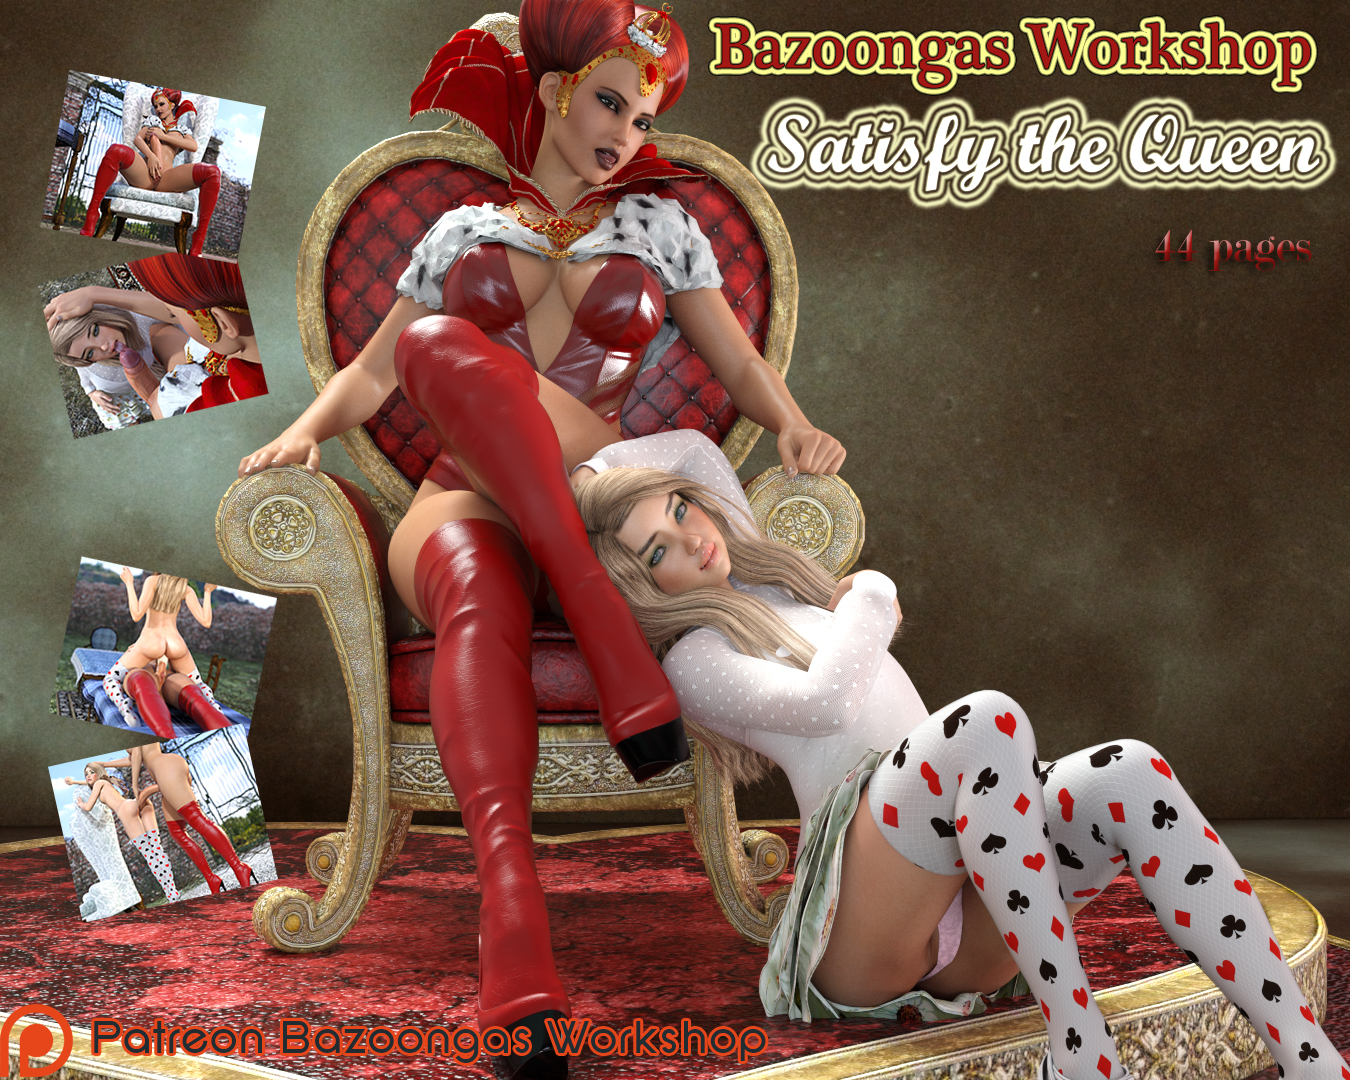 SureFap xxx porno Alice in Wonderland - [Bazoongas Workshop][3D] - Satisfy the Queen